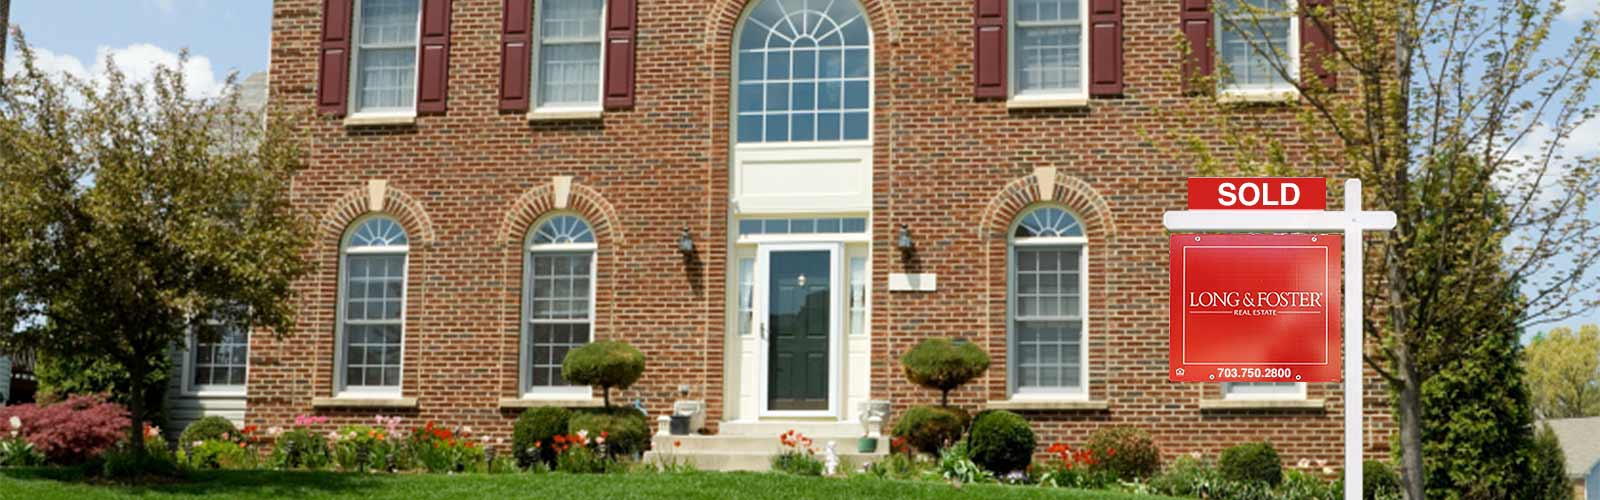 Contact Win Singleton - homes for sale in Falls Church VA